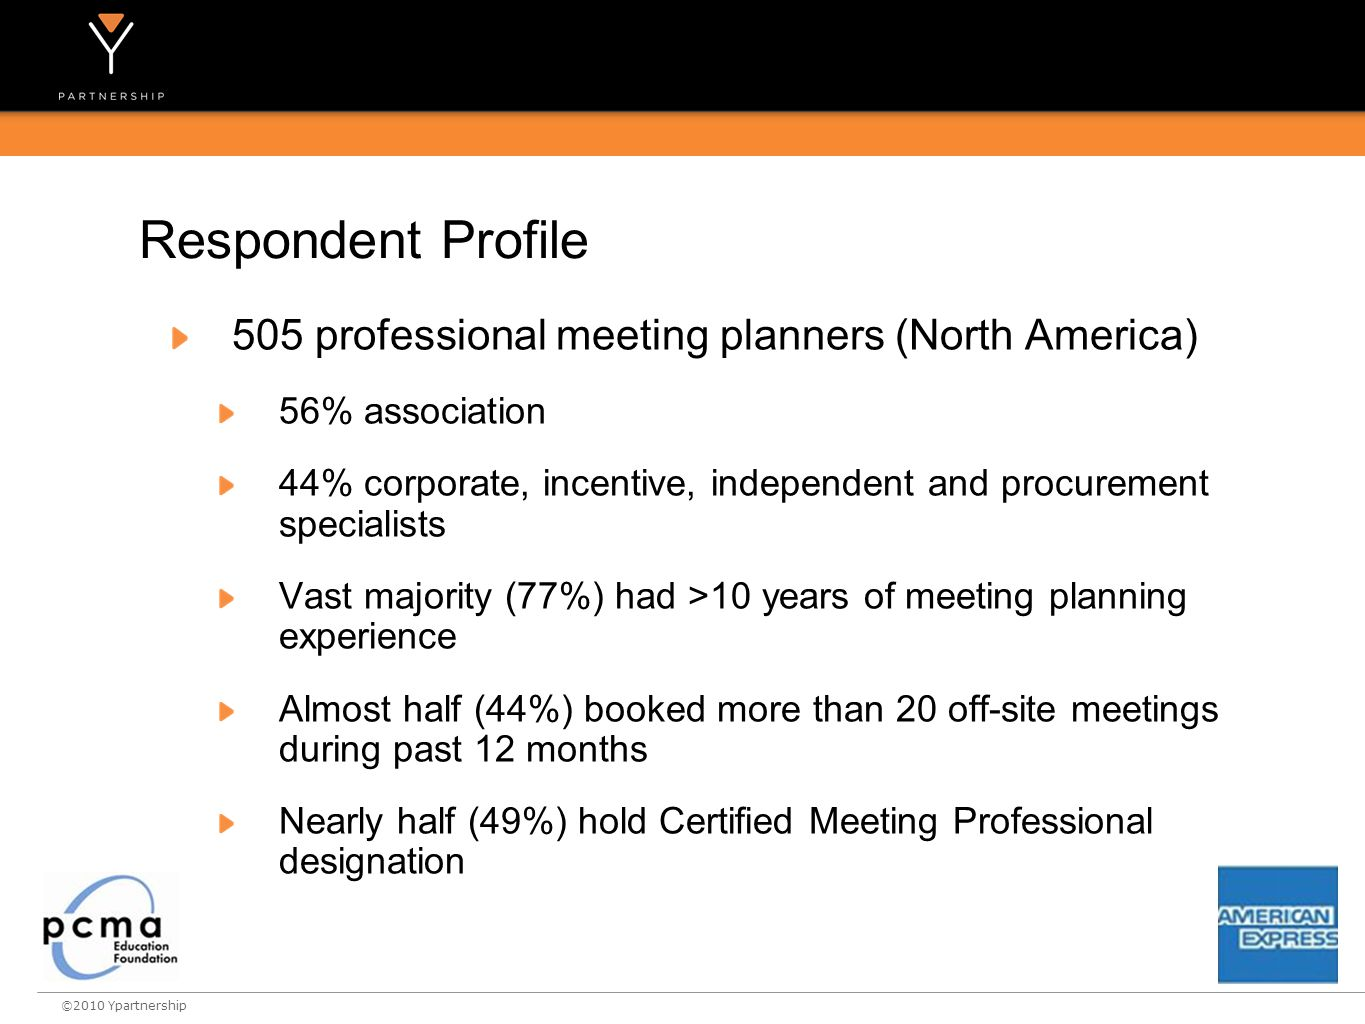 ©2010 Ypartnership 505 professional meeting planners (North America) 56% association 44% corporate, incentive, independent and procurement specialists Vast majority (77%) had >10 years of meeting planning experience Almost half (44%) booked more than 20 off-site meetings during past 12 months Nearly half (49%) hold Certified Meeting Professional designation Respondent Profile